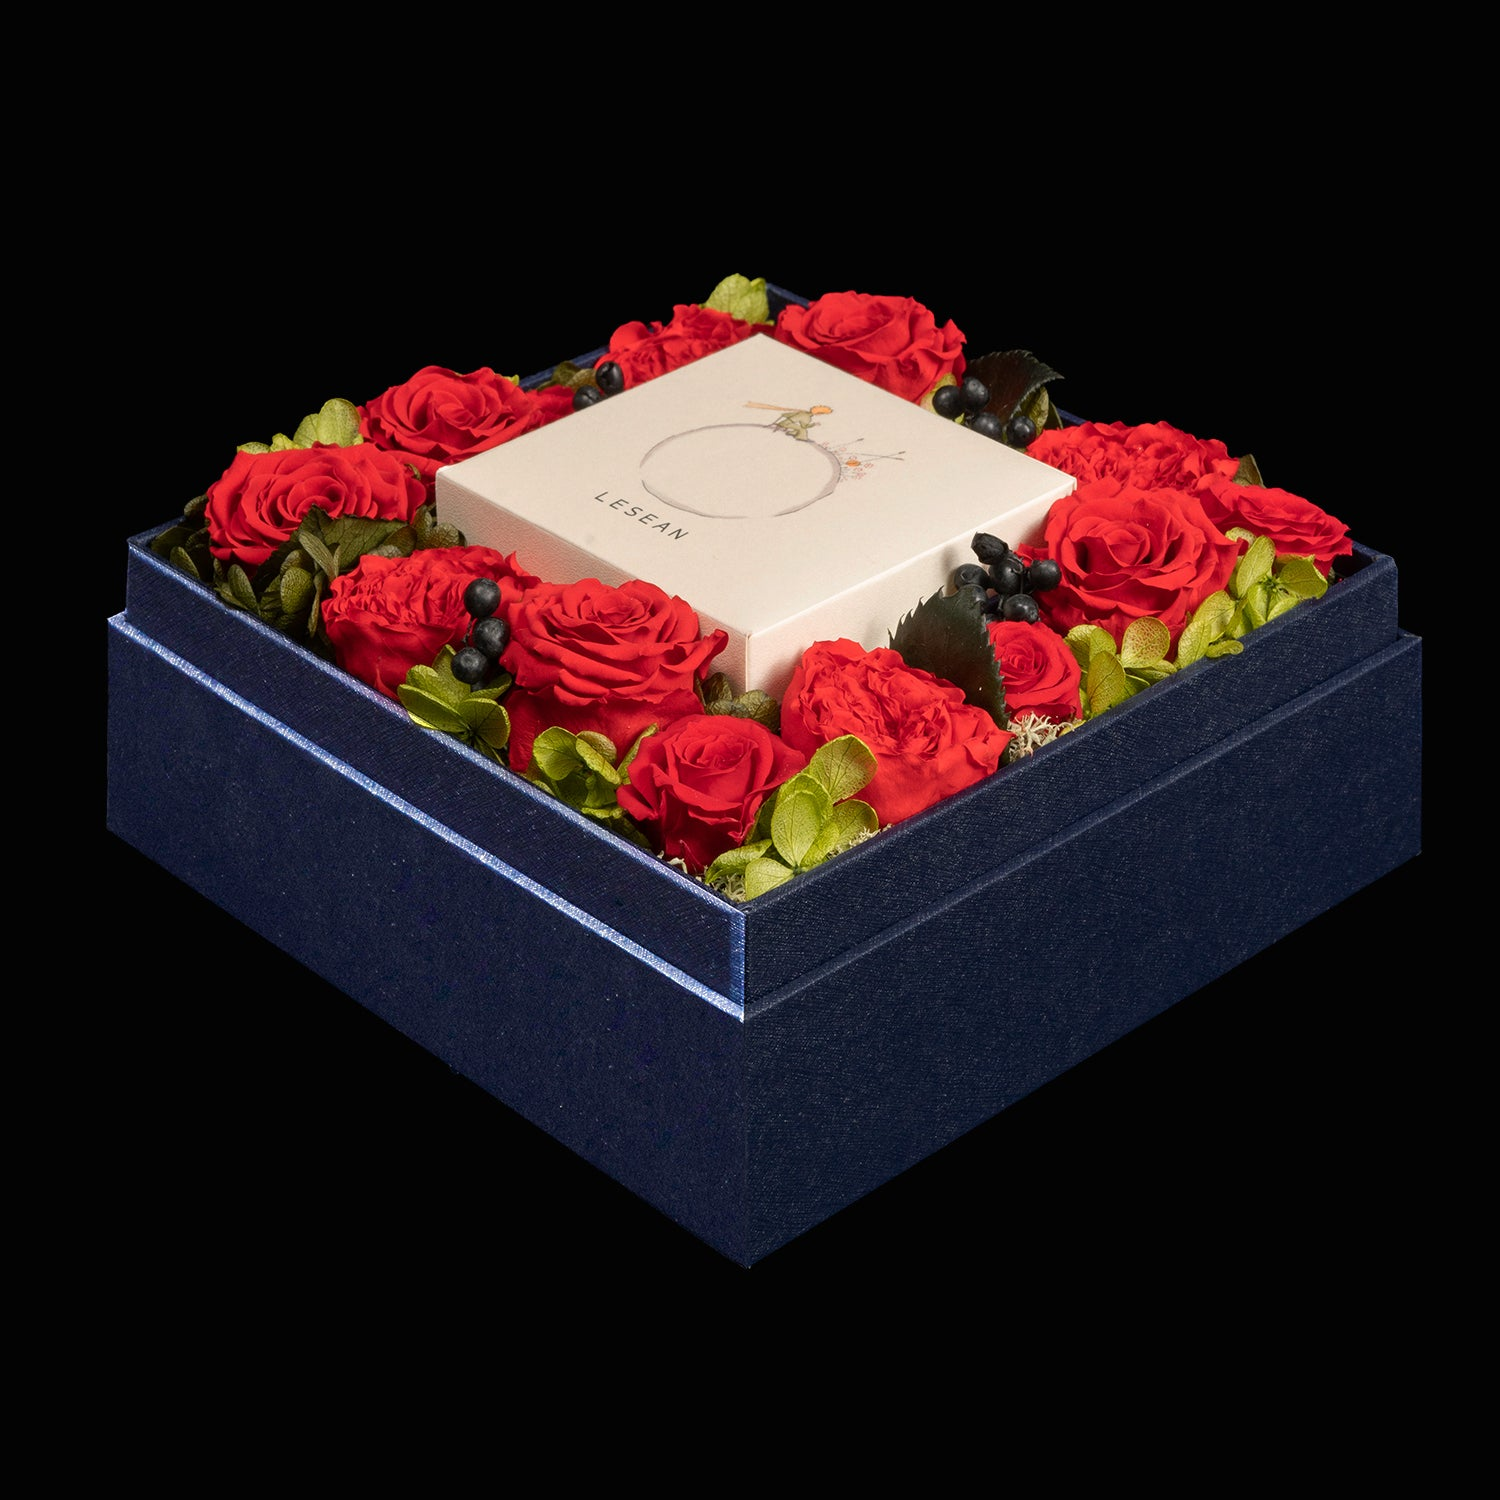 LESEAN ®️ x LE PETIT PRINCE®️ Preserved Flower Mooncake Box Set (1 pc special Edition) - Bright Red